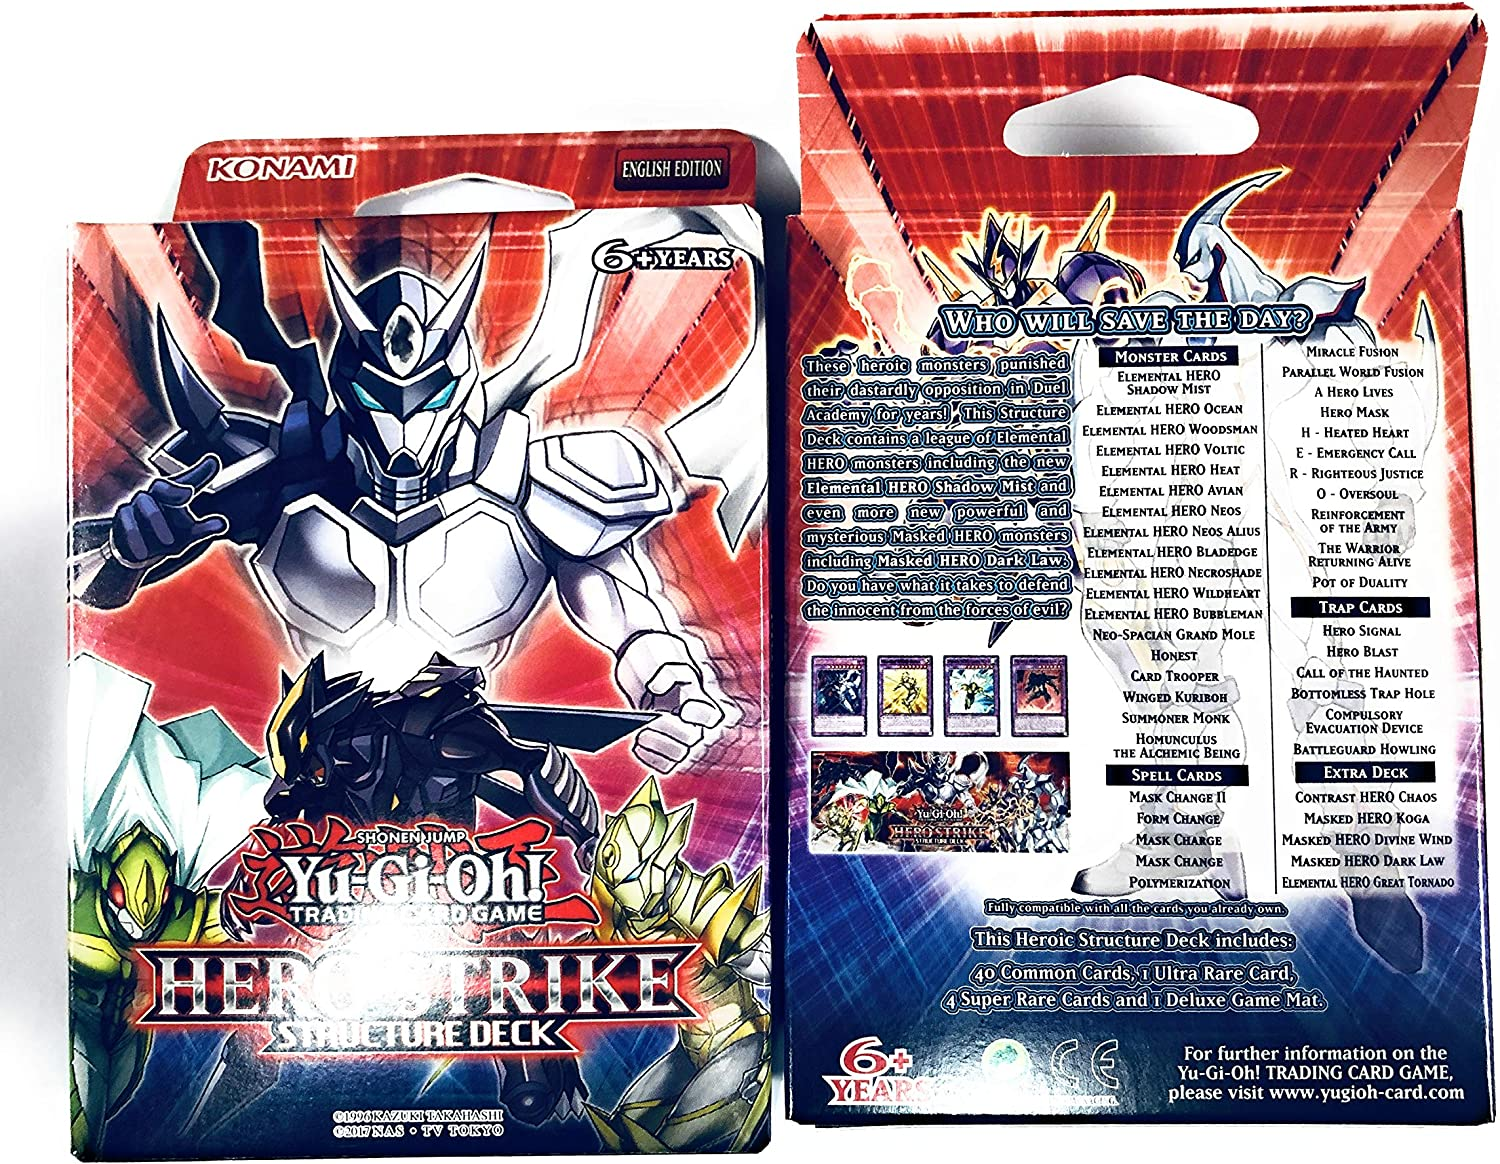 YUGIOH ENGLISH HERO STRIKE STRUCTURE DECK LOT OF 2 FREE SAME DAY SHIPPING